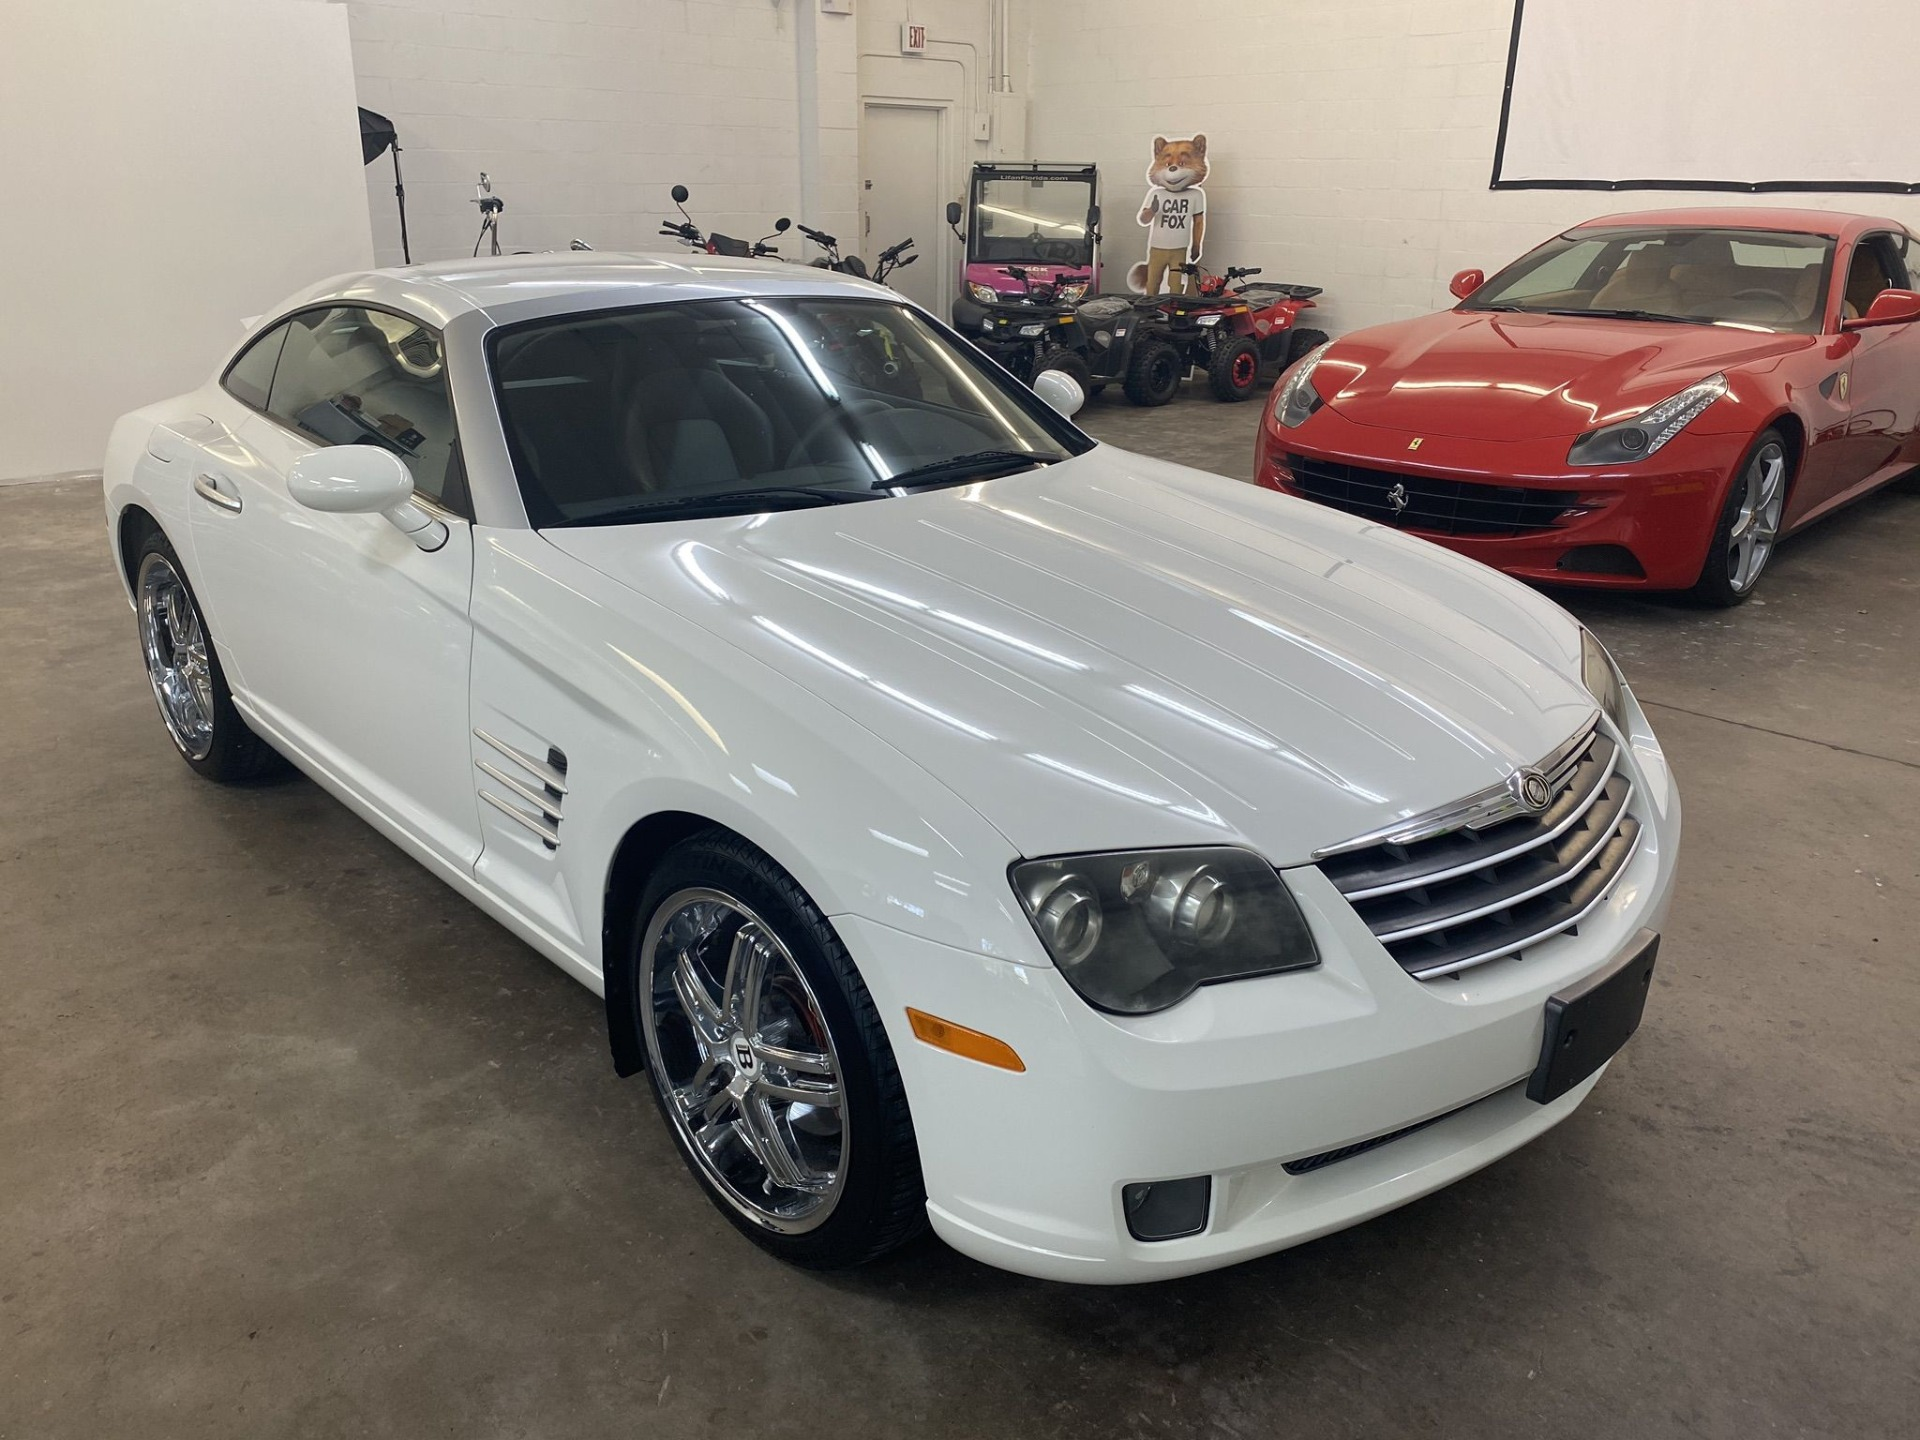 Used 2005 Chrysler Crossfire Limited Coupe 2D for sale Sold at Track and Field Motors in Safety Harbor FL 34695 1